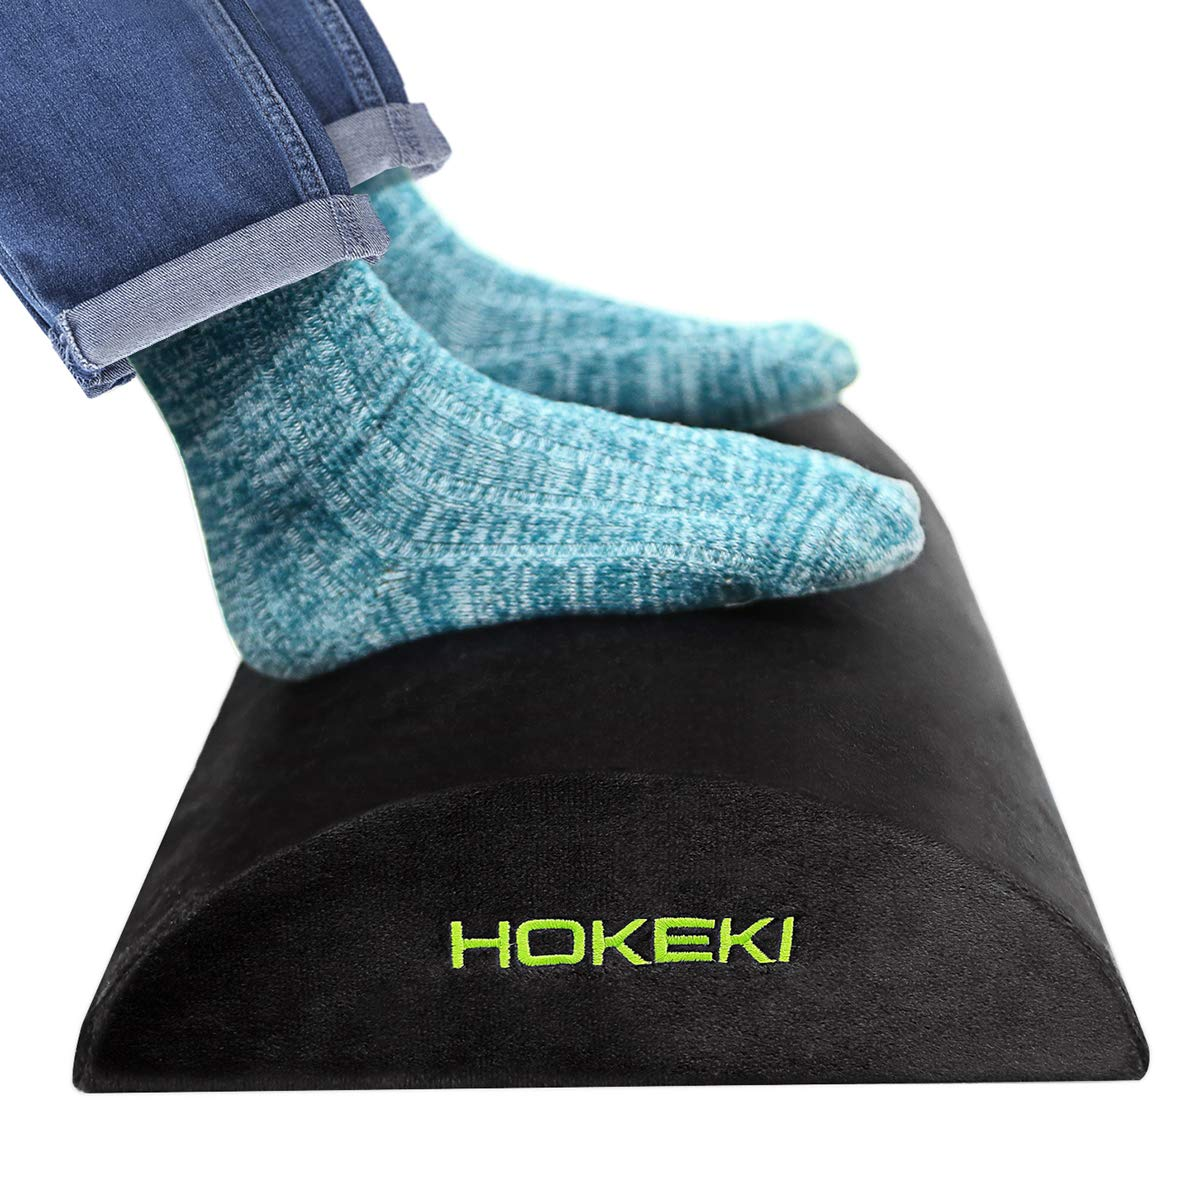 HOKEKI Foot Rest Under Desk, Soft Yet Firm Foam Foot Cushion Under Desk Foot Stool Pillow for Office and Home Accessories,With Non-Slip Surface(Black)